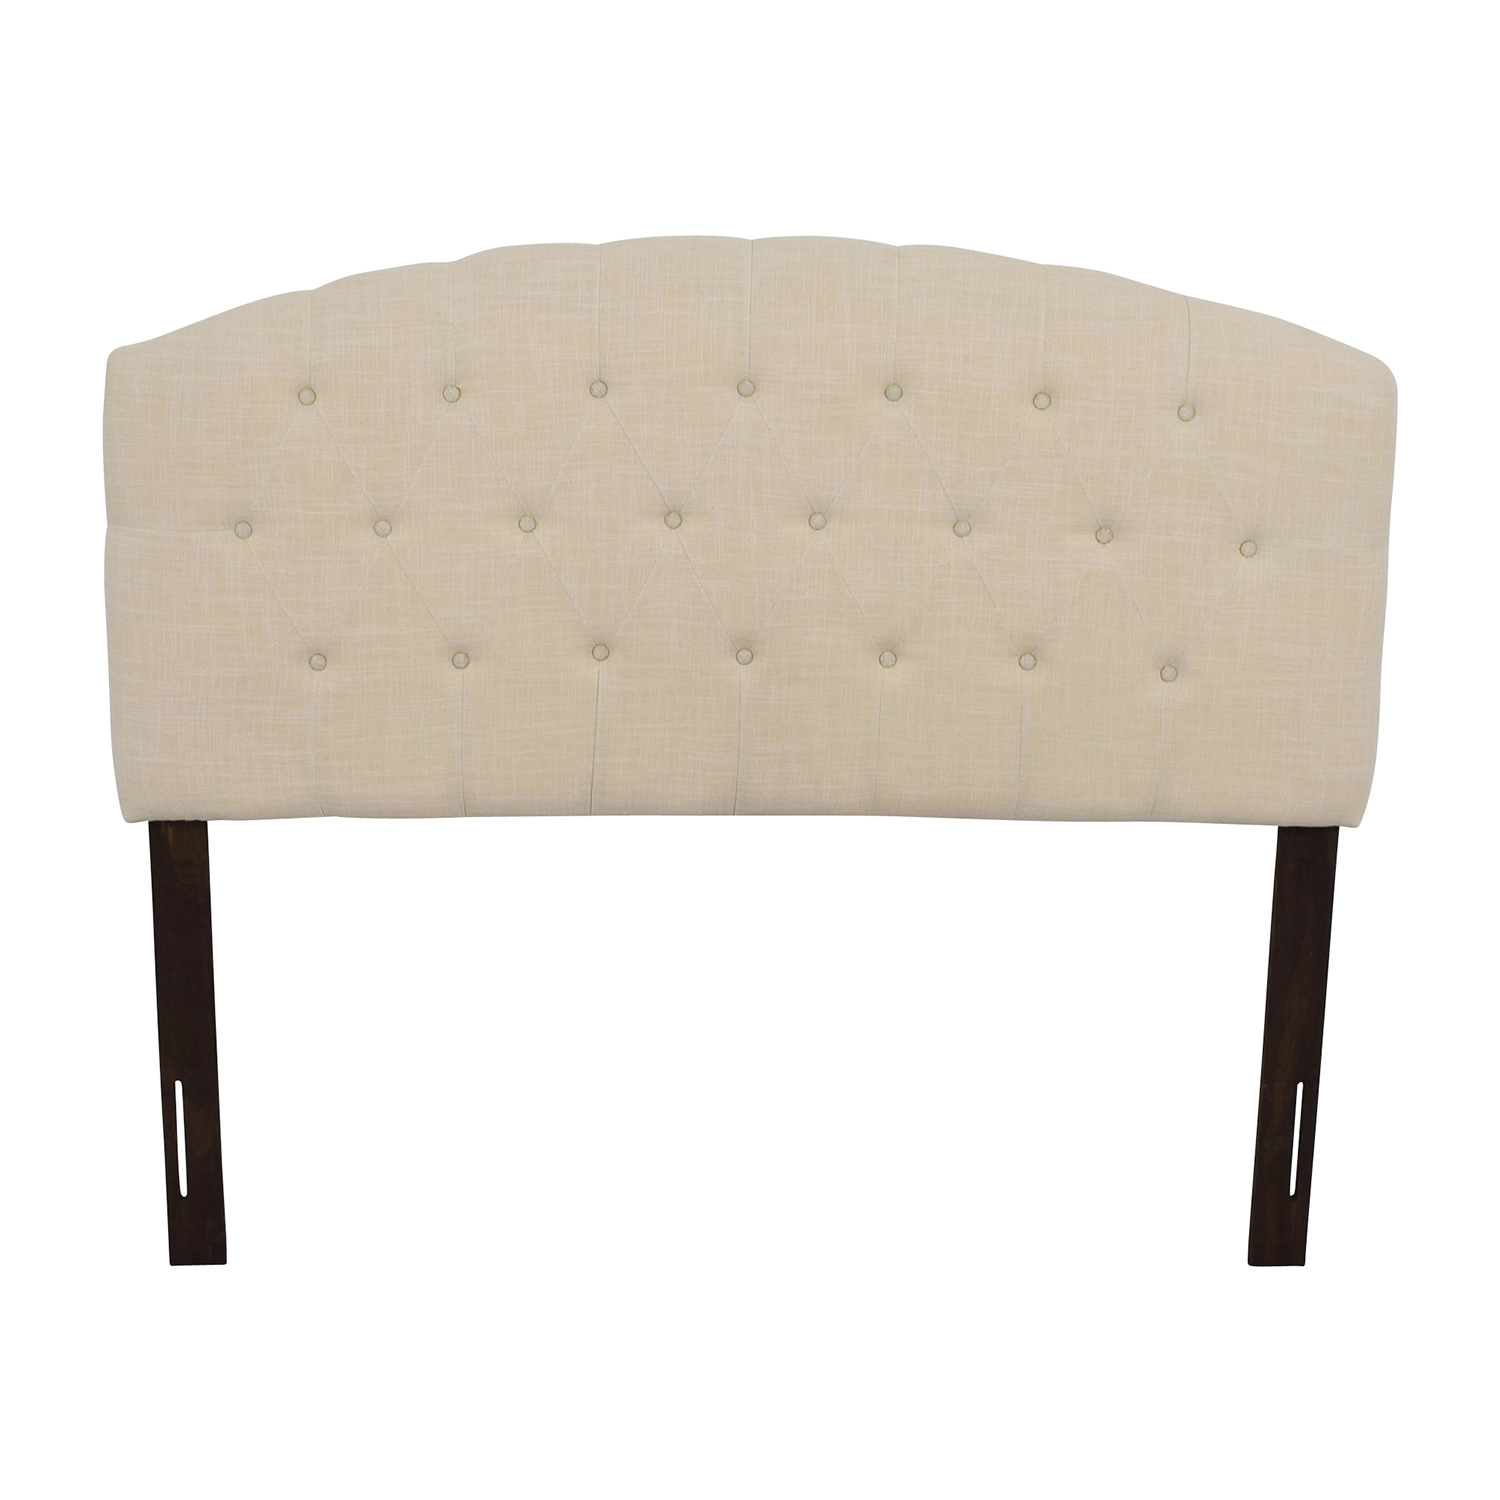 Humble + Haute Humble + Haute Ivory Linen Blend Curved Upholstered Headboard used